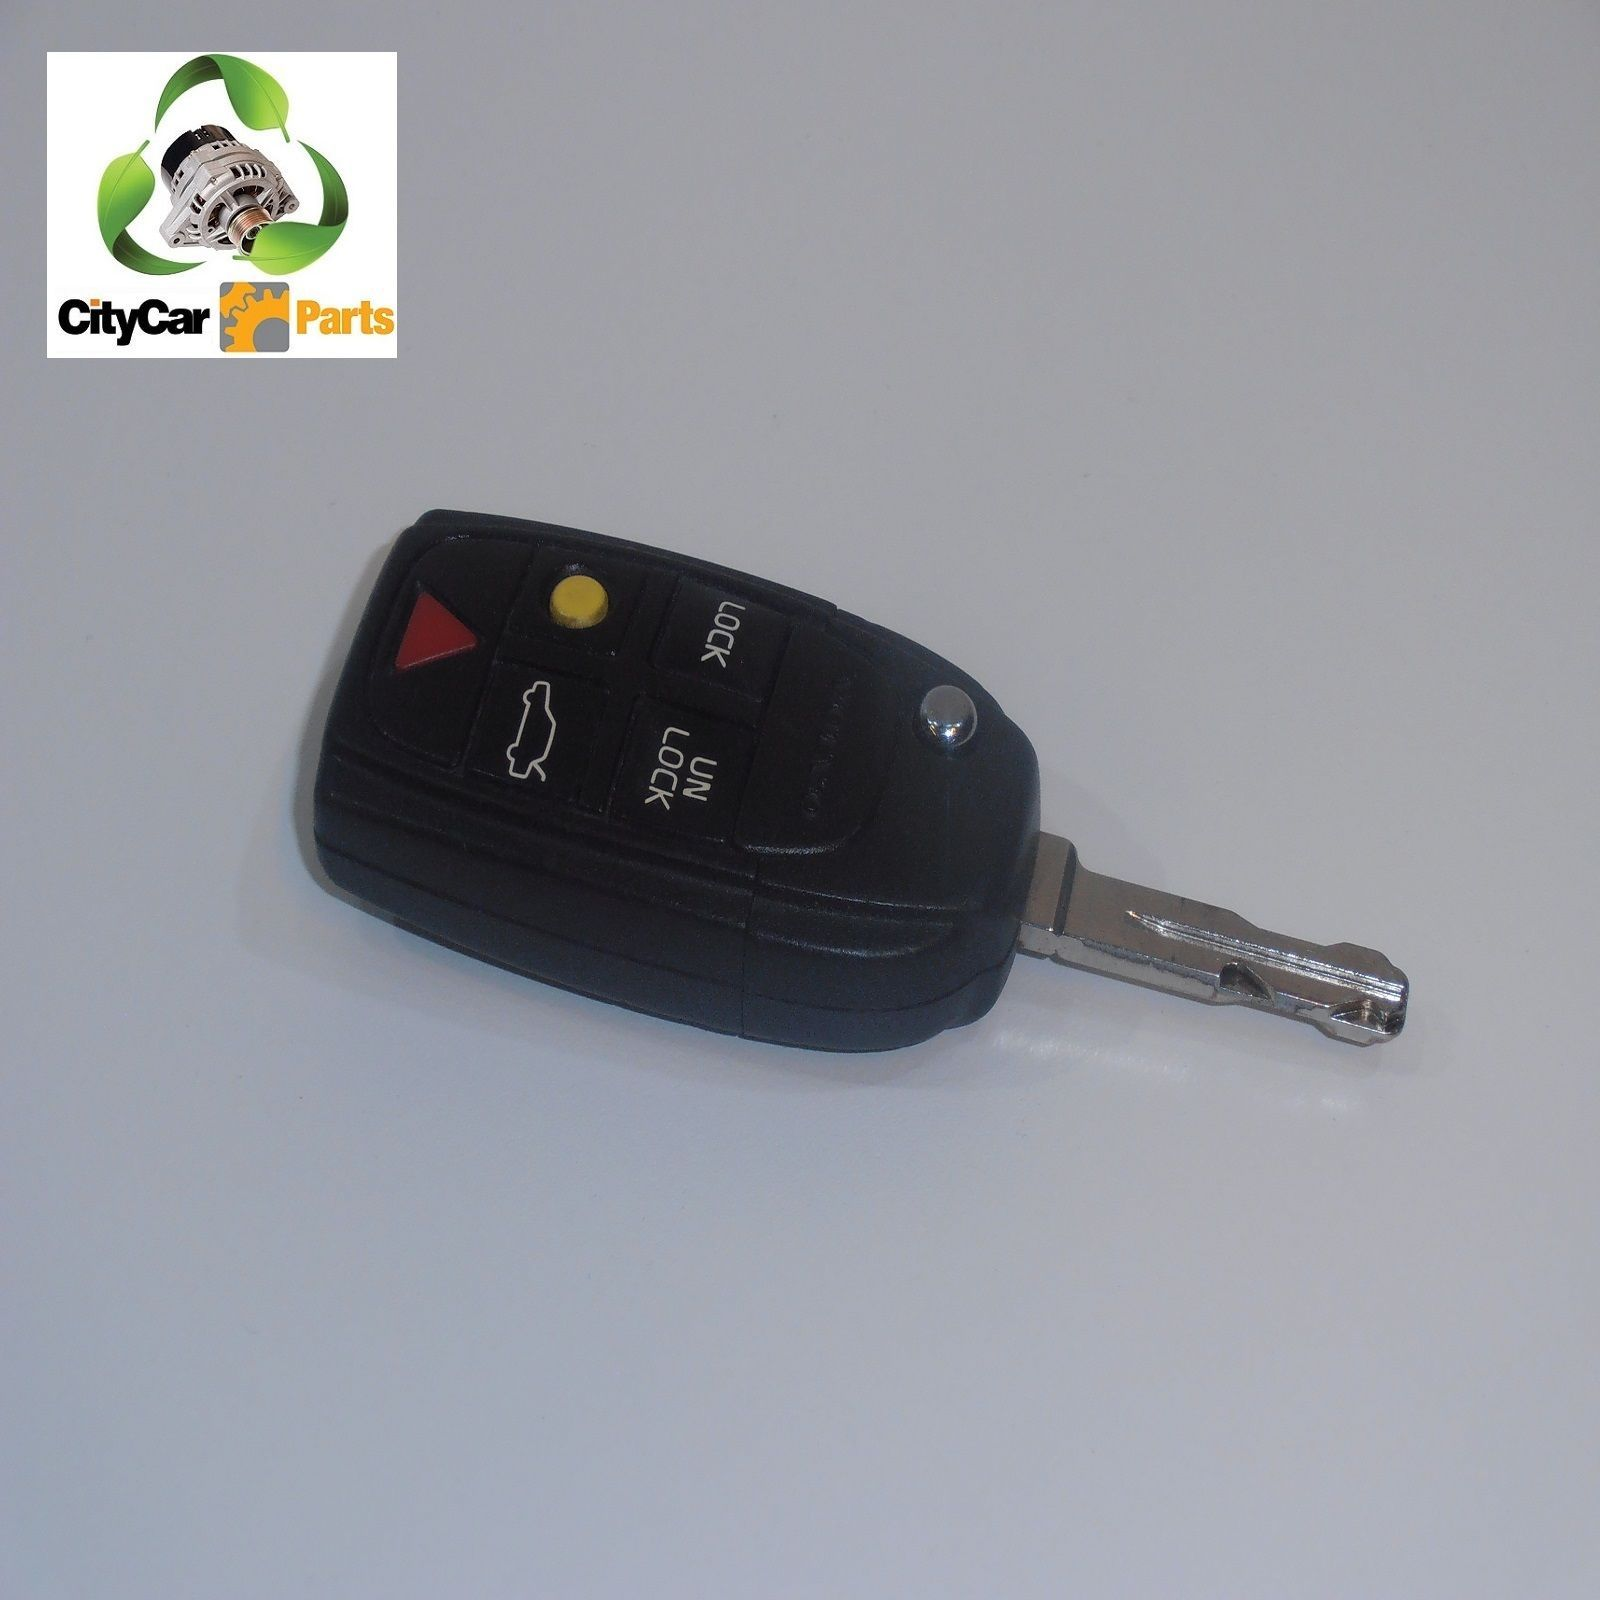 screwdriver use panel direction baldy section ramblings could the or guide you back in shown twist battery flat blade fob written my lower but volvo key a index replace i lifts just off of used